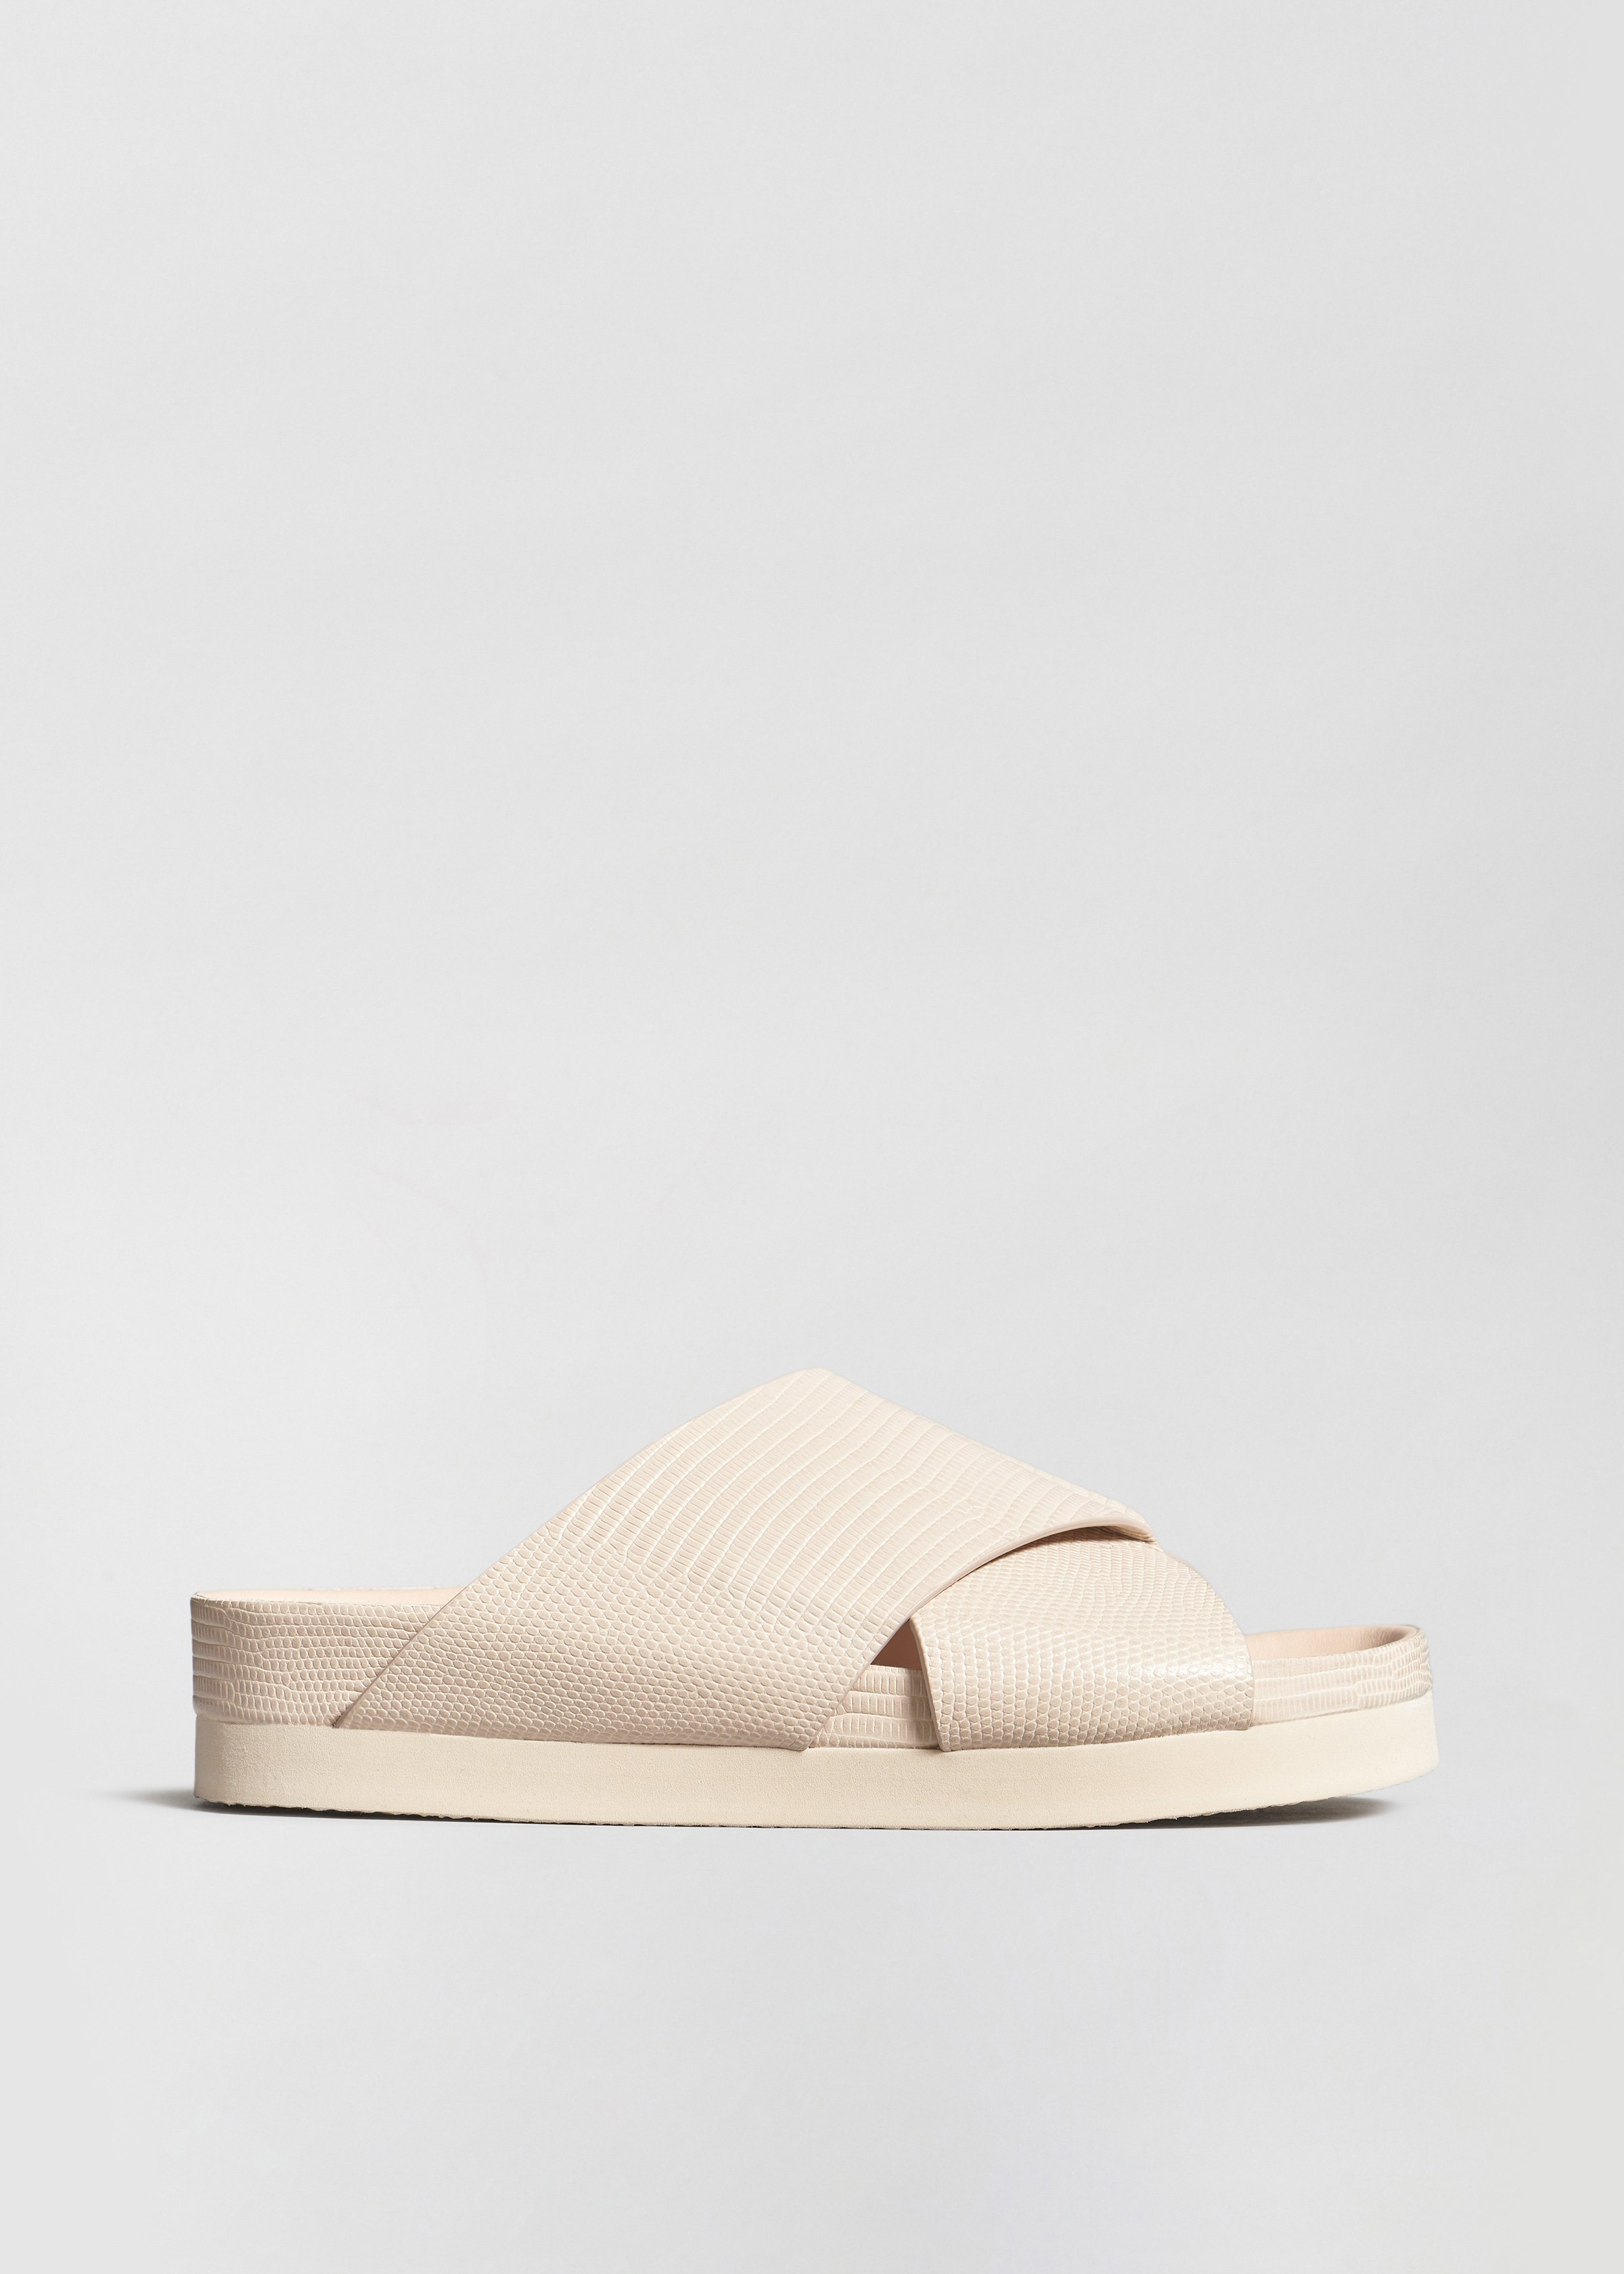 Slide Sandal in Embossed Leather - Sand - Co Collections